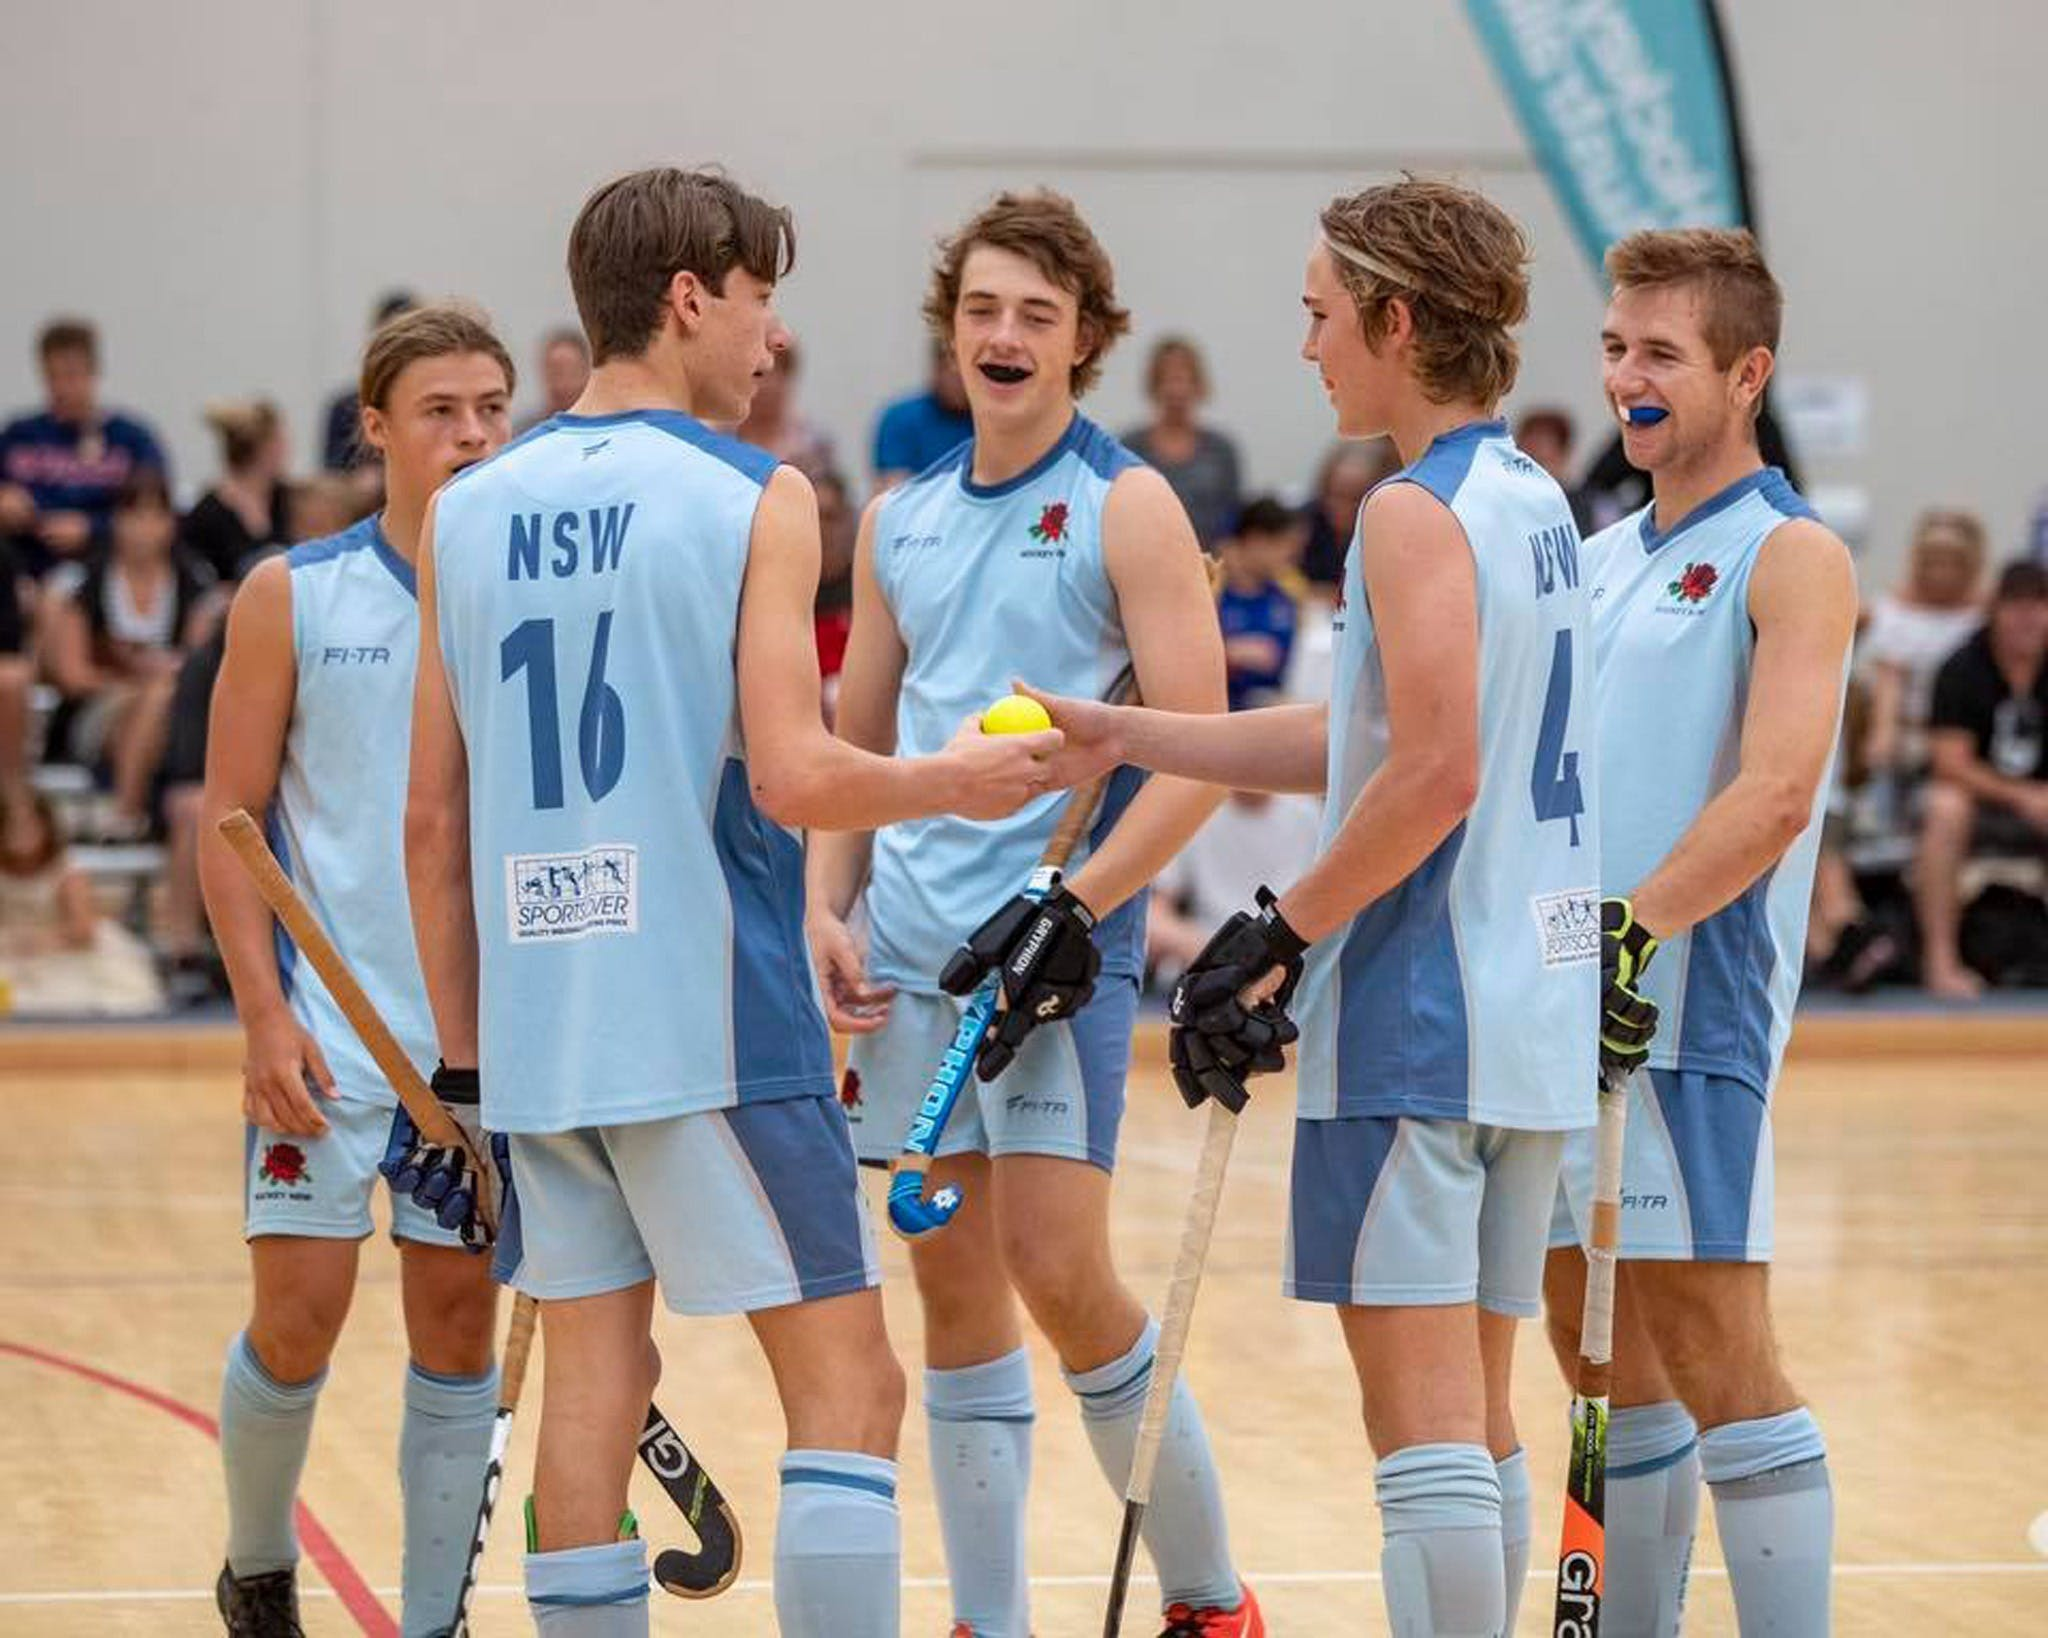 Hockey NSW Indoor State Championship  Open Men - Sunshine Coast Tourism